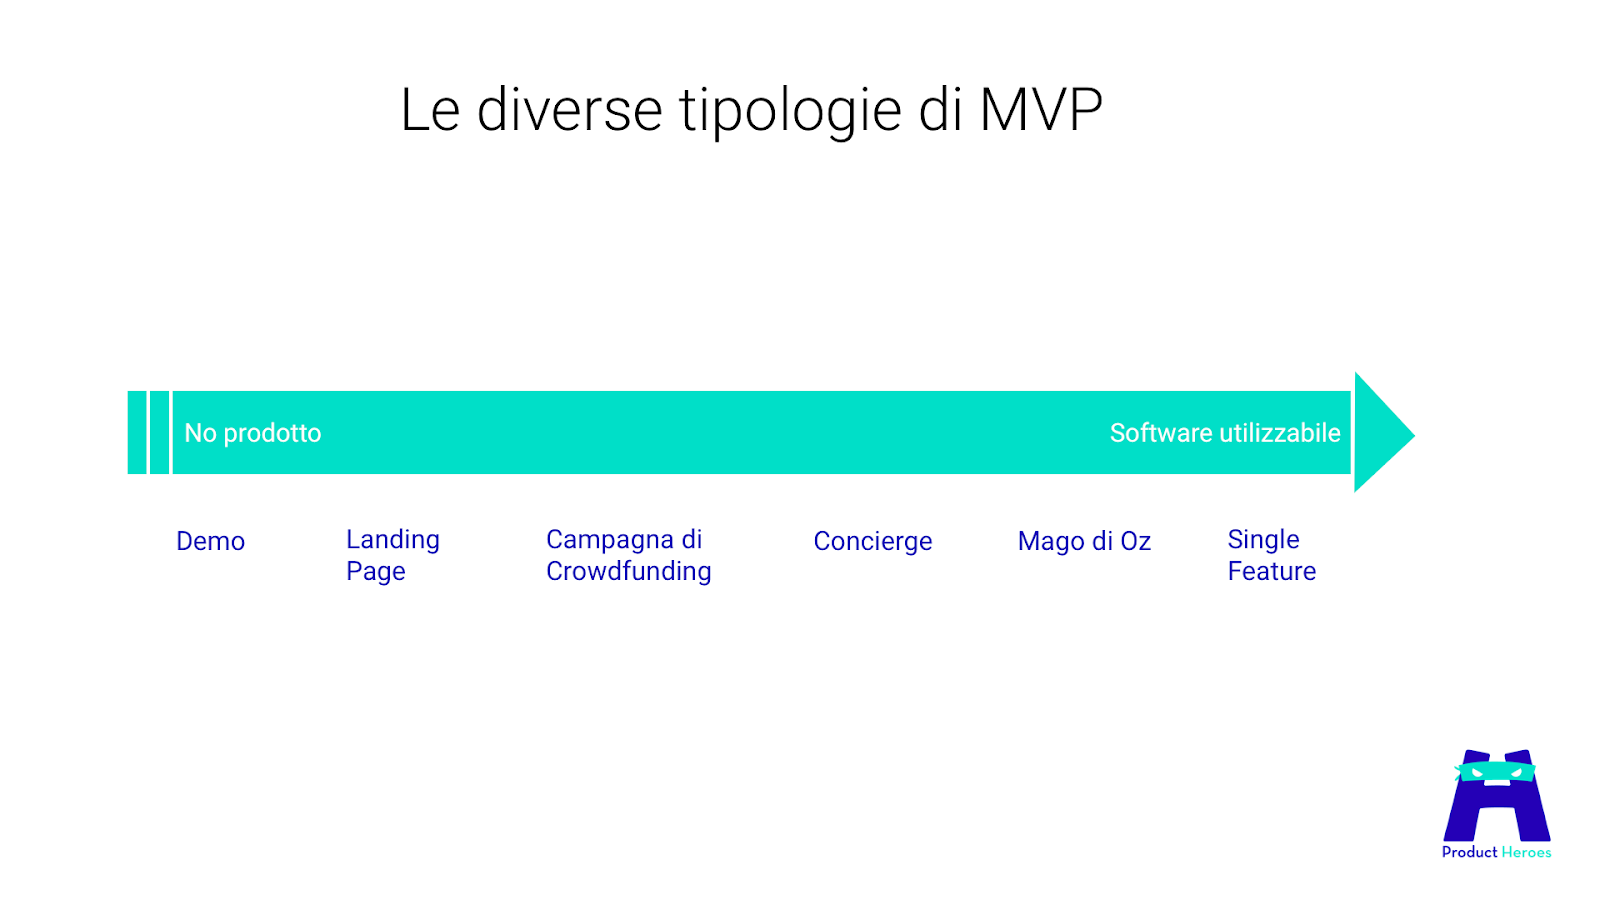 MVP, le diverse tipologie